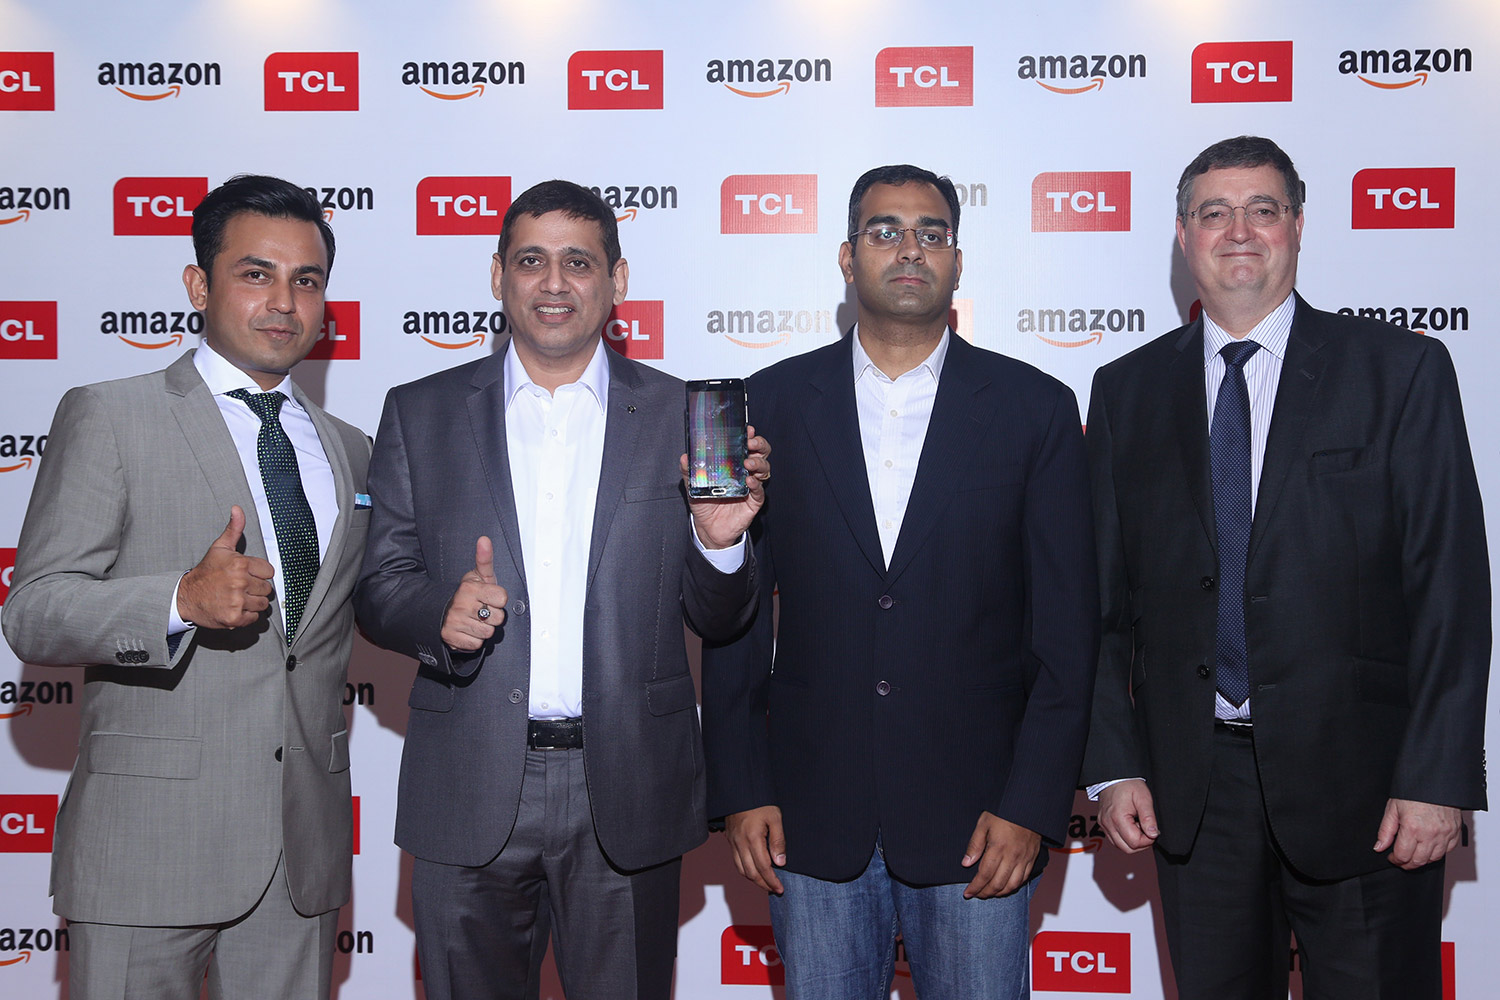 TCL 560 Mobile launch 7